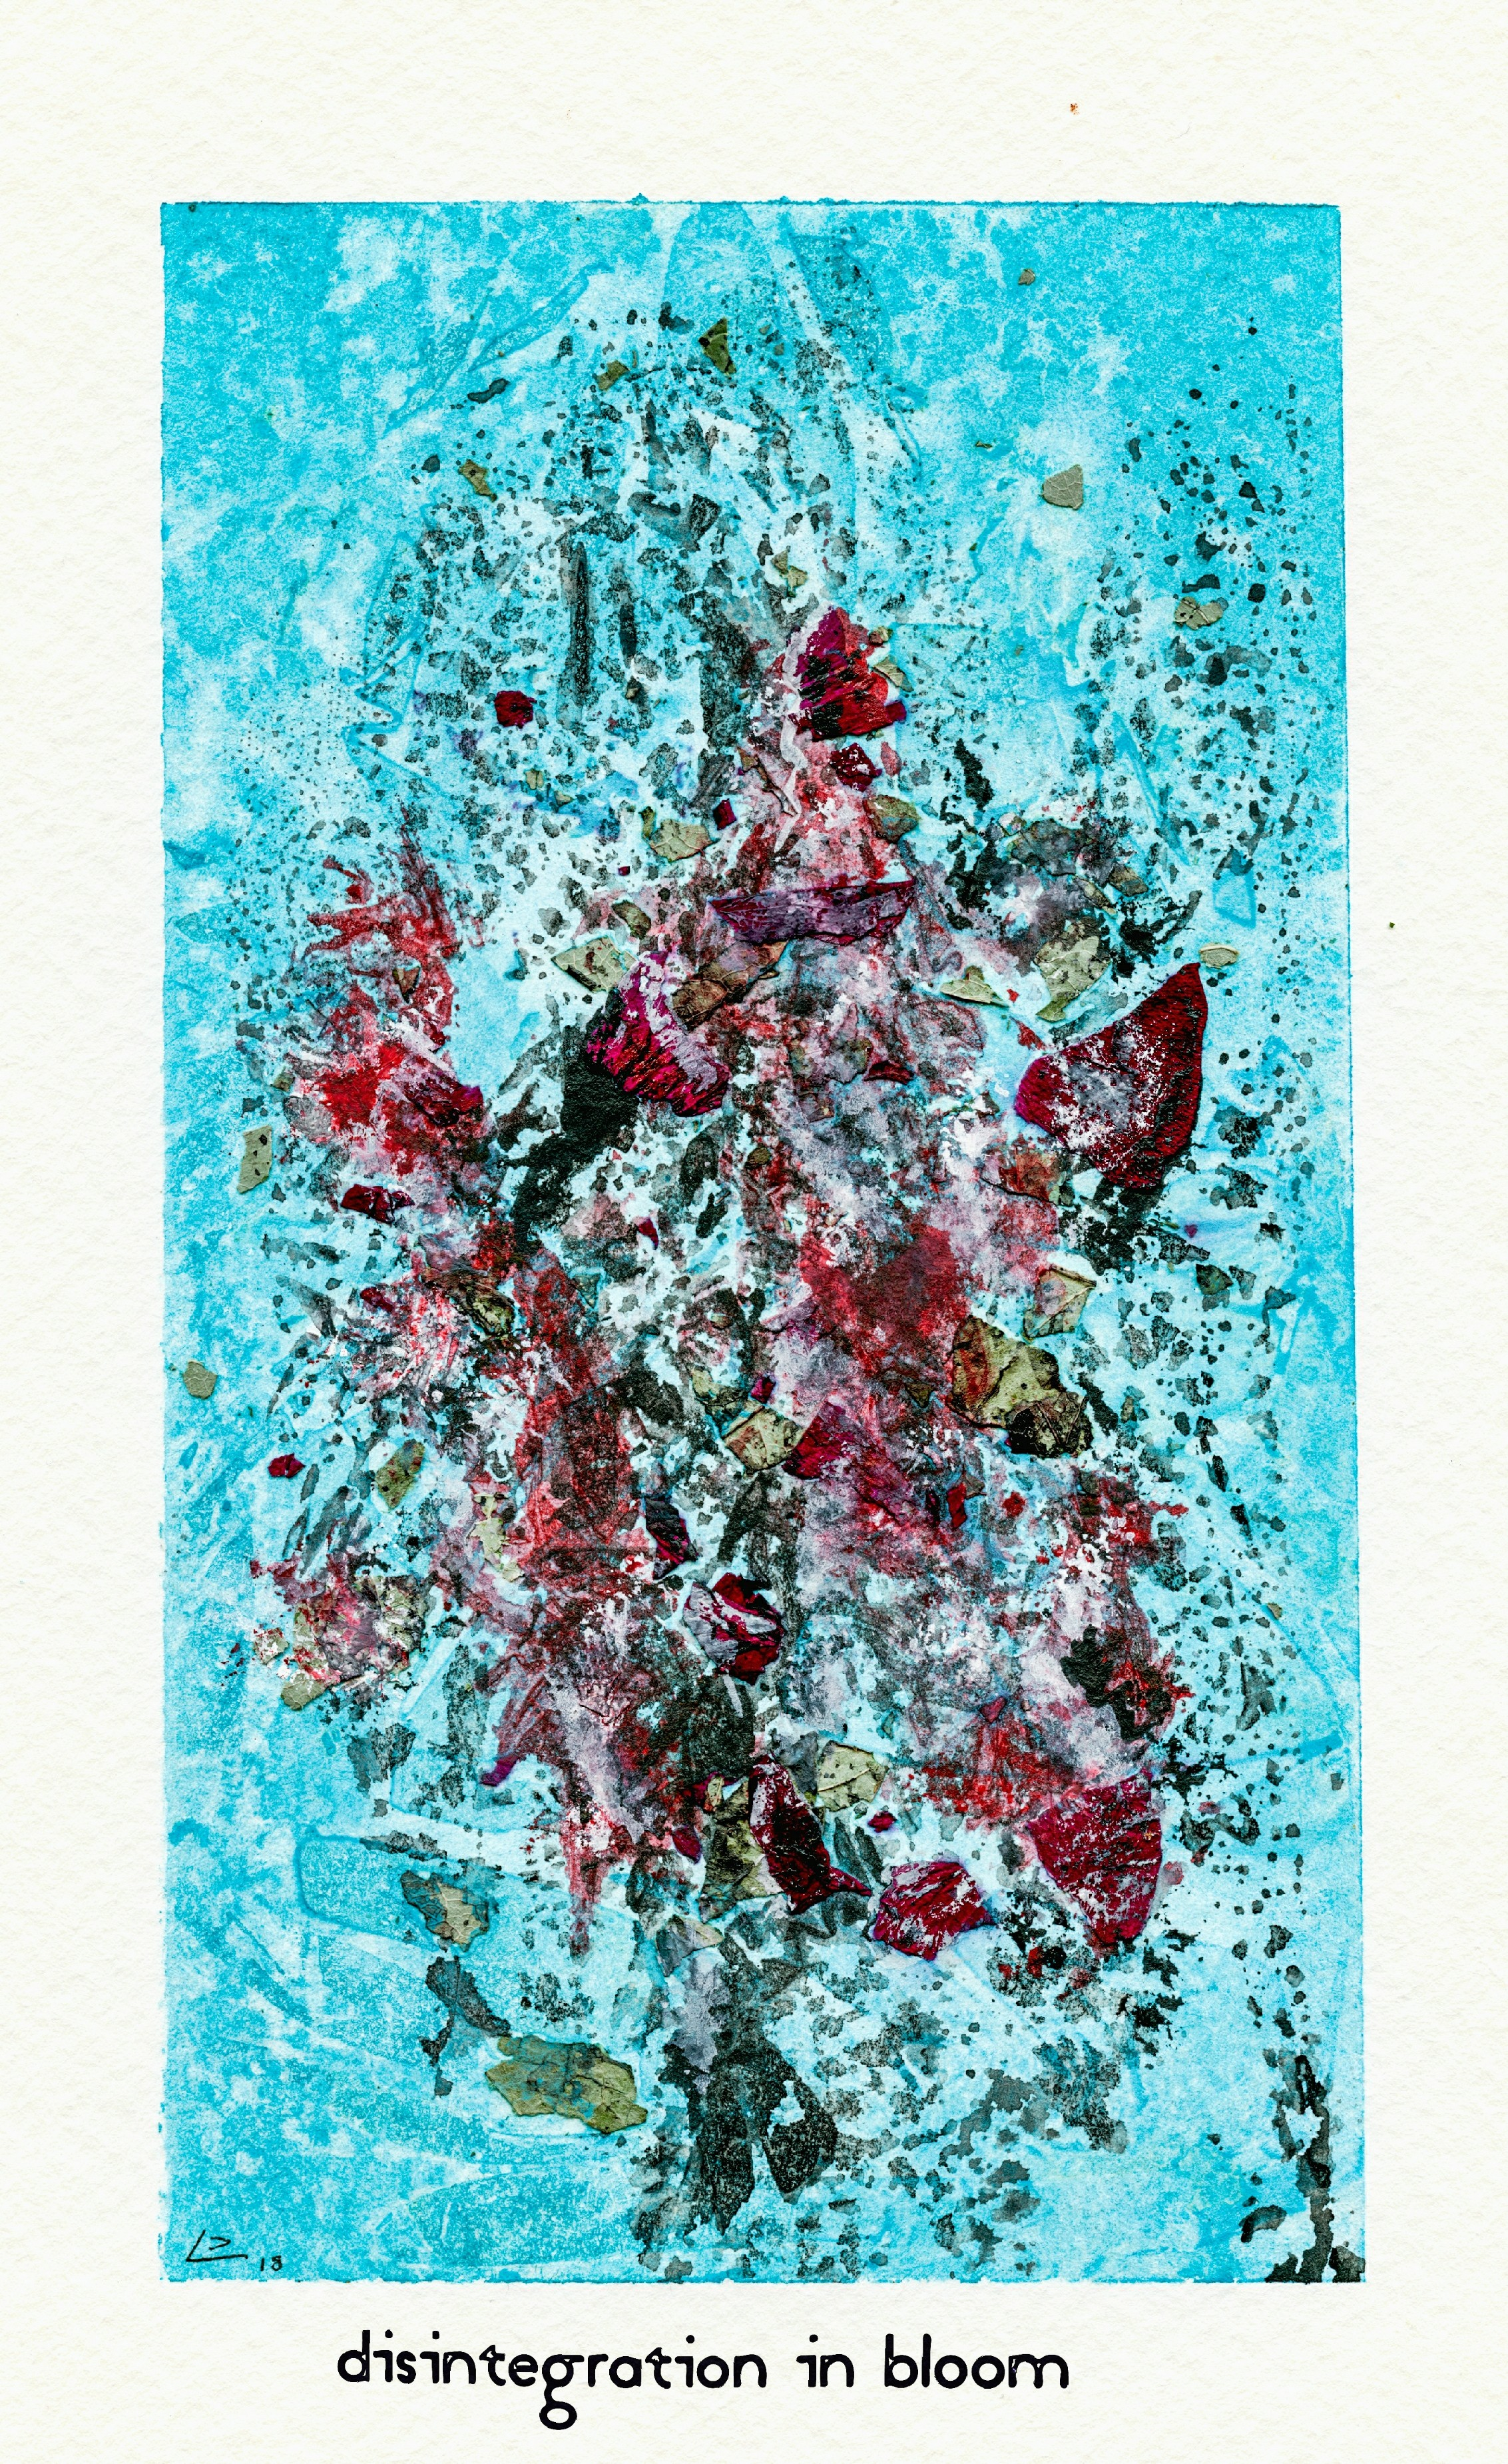 (Scan of watercolor painting in the Post Conventional Expressionist style.  M . Graham Artists' Watercolors used. 5x8 on cold press paper, with dried flowers mixed into the paint. Title - Disintegration In Bloom - 06/27/2018)